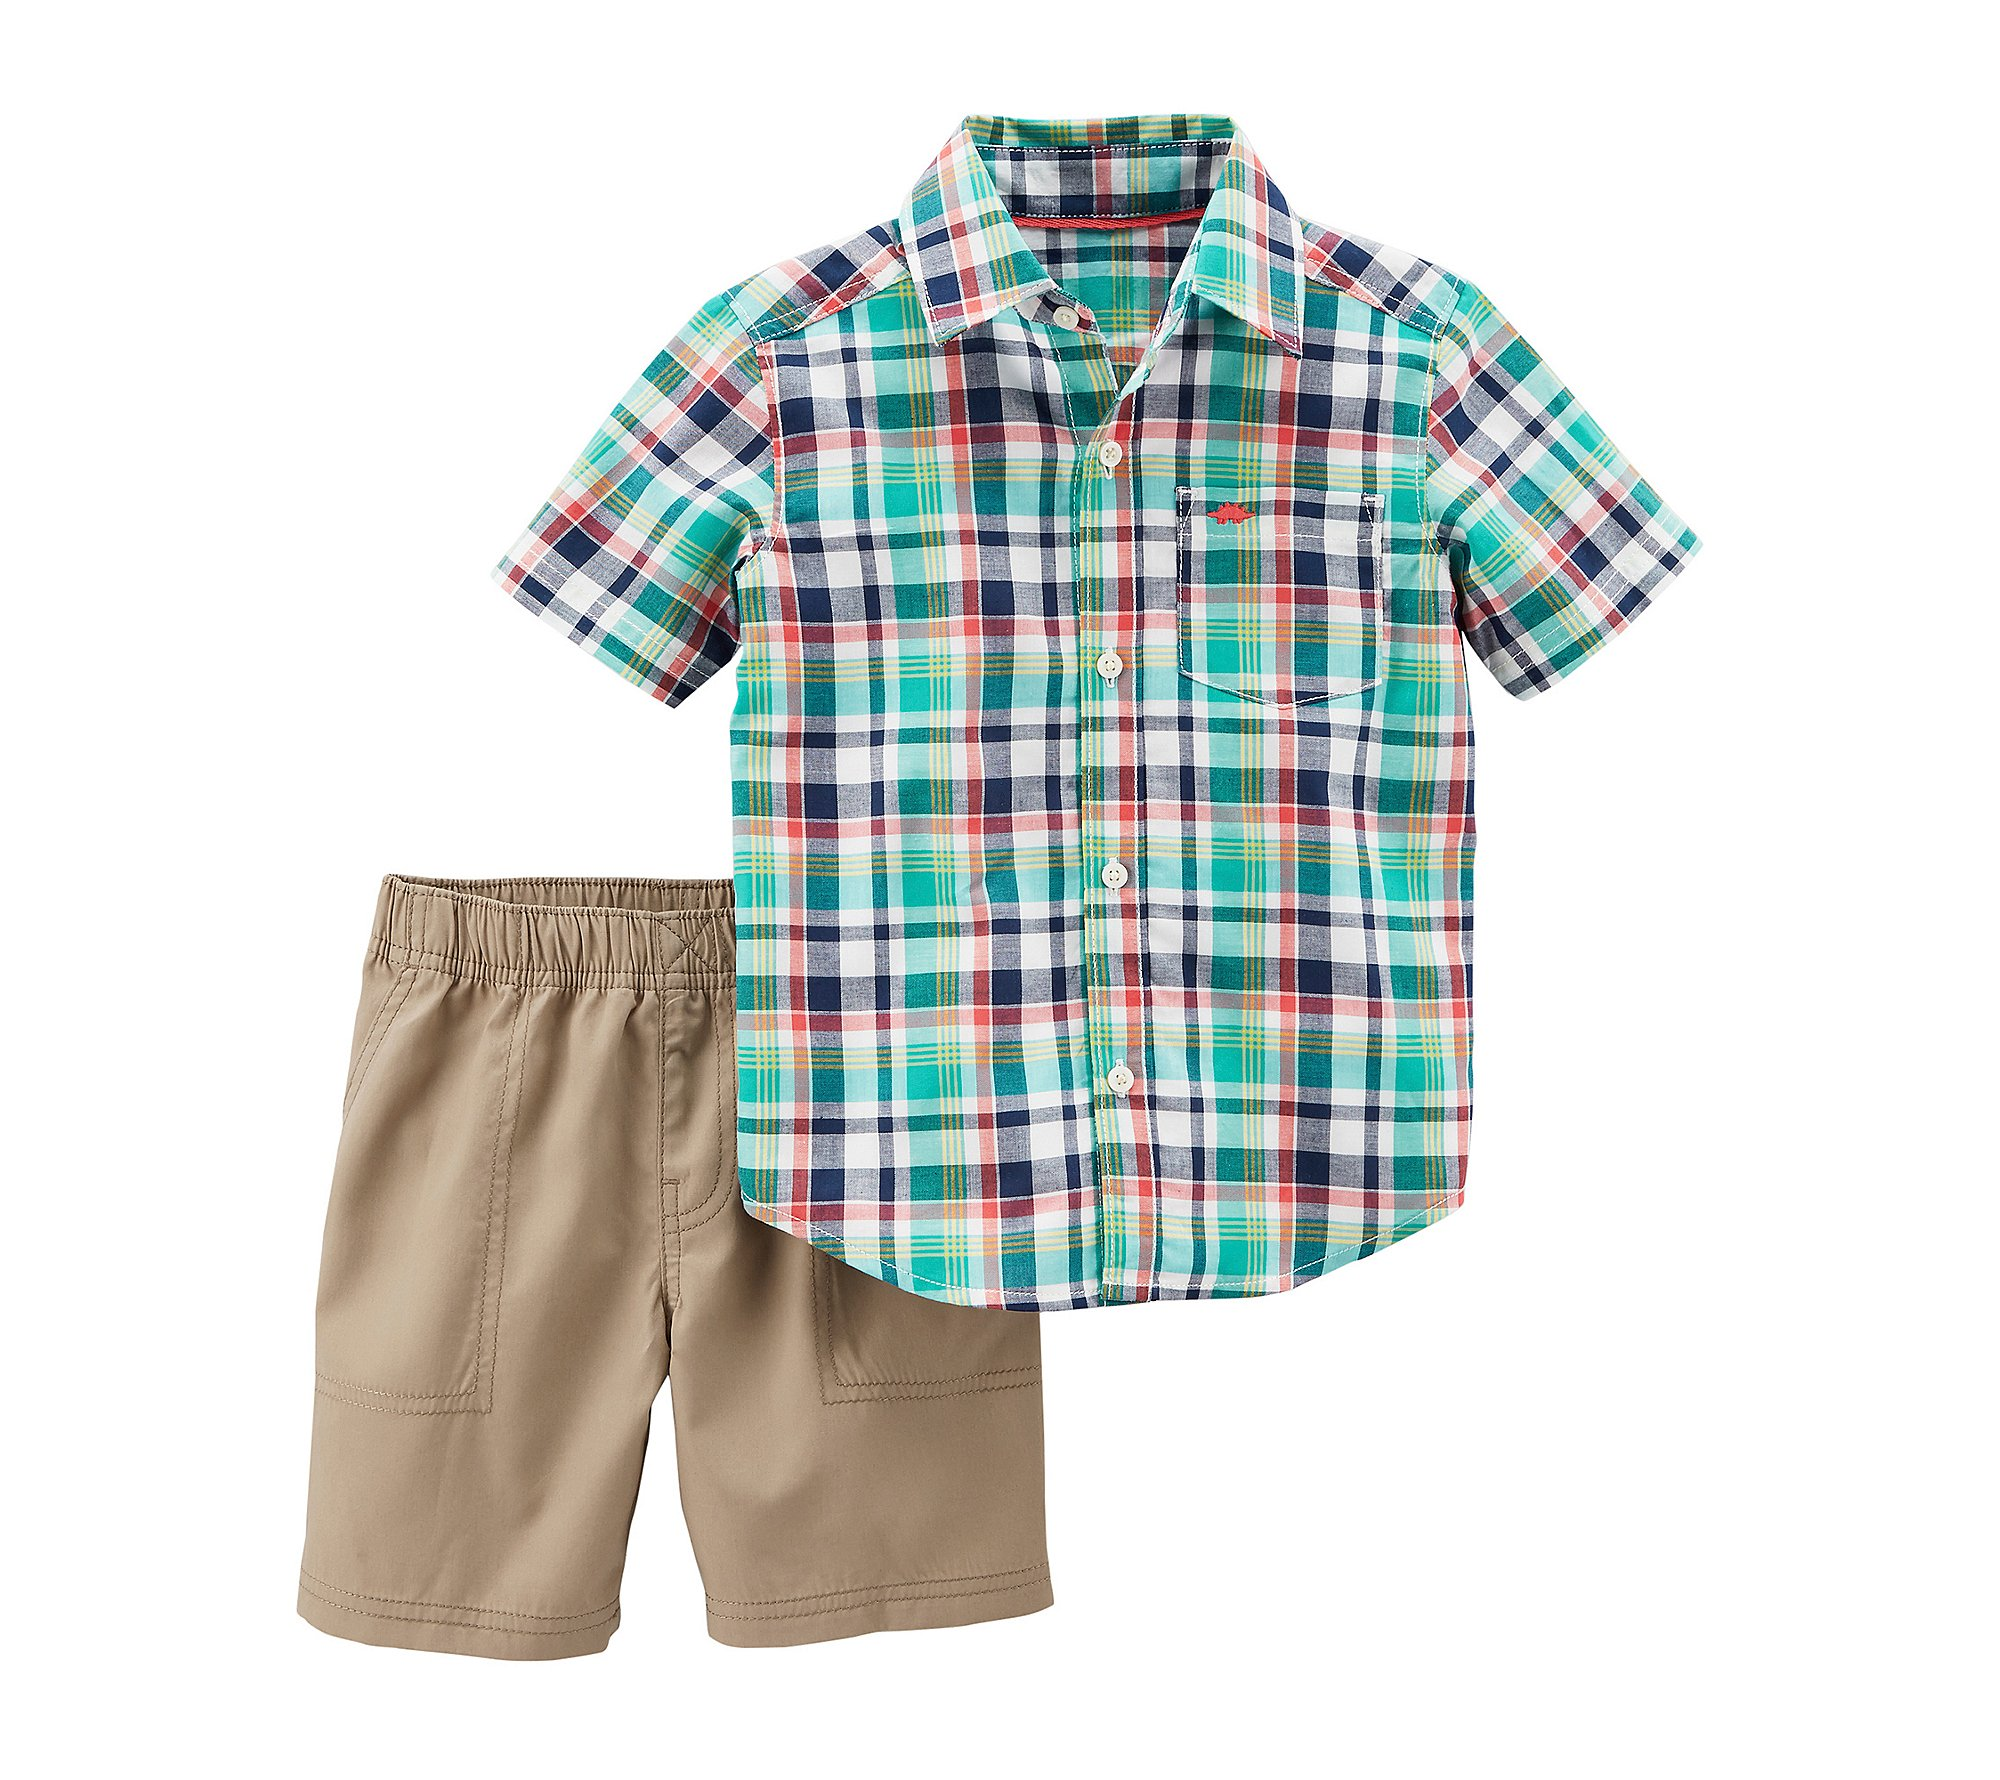 Carters Baby Boys 2 Pc Playwear Sets 249g396 Carters